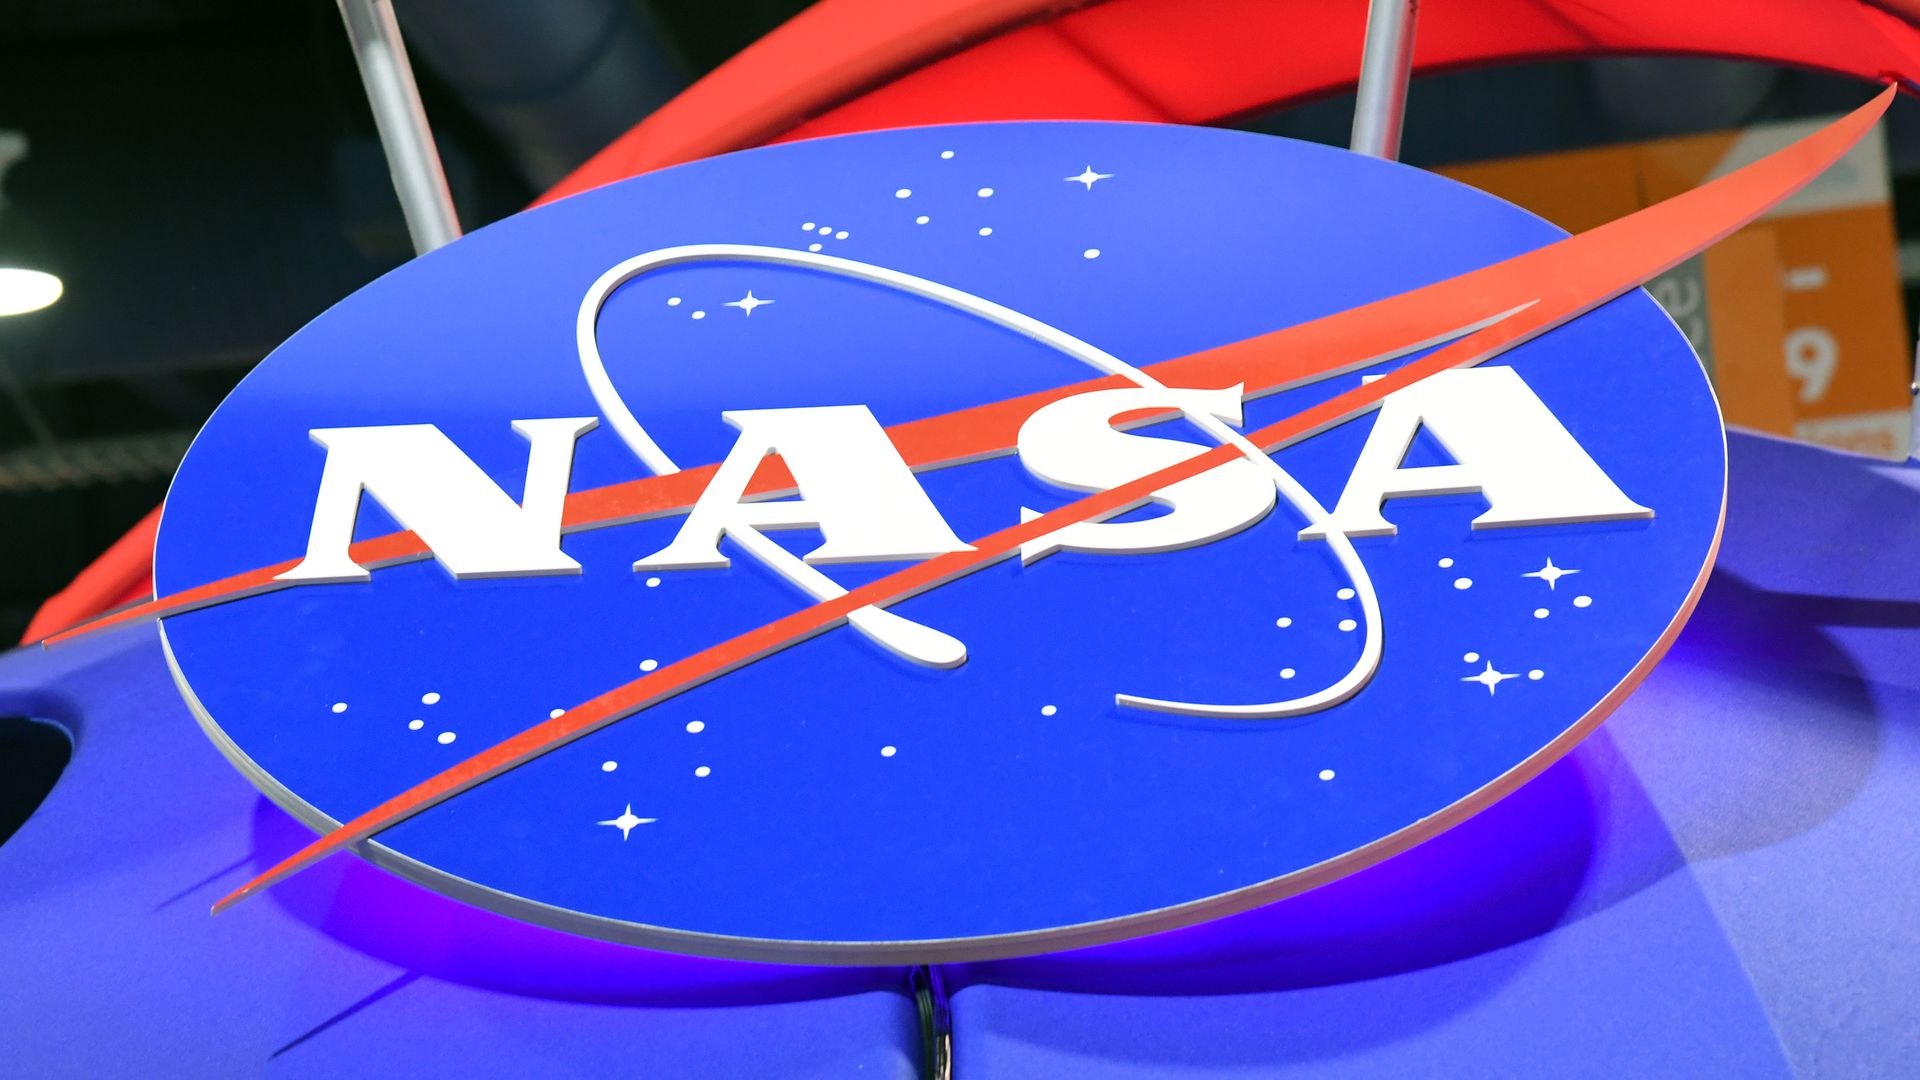 In this image, the NASA logo is displayed